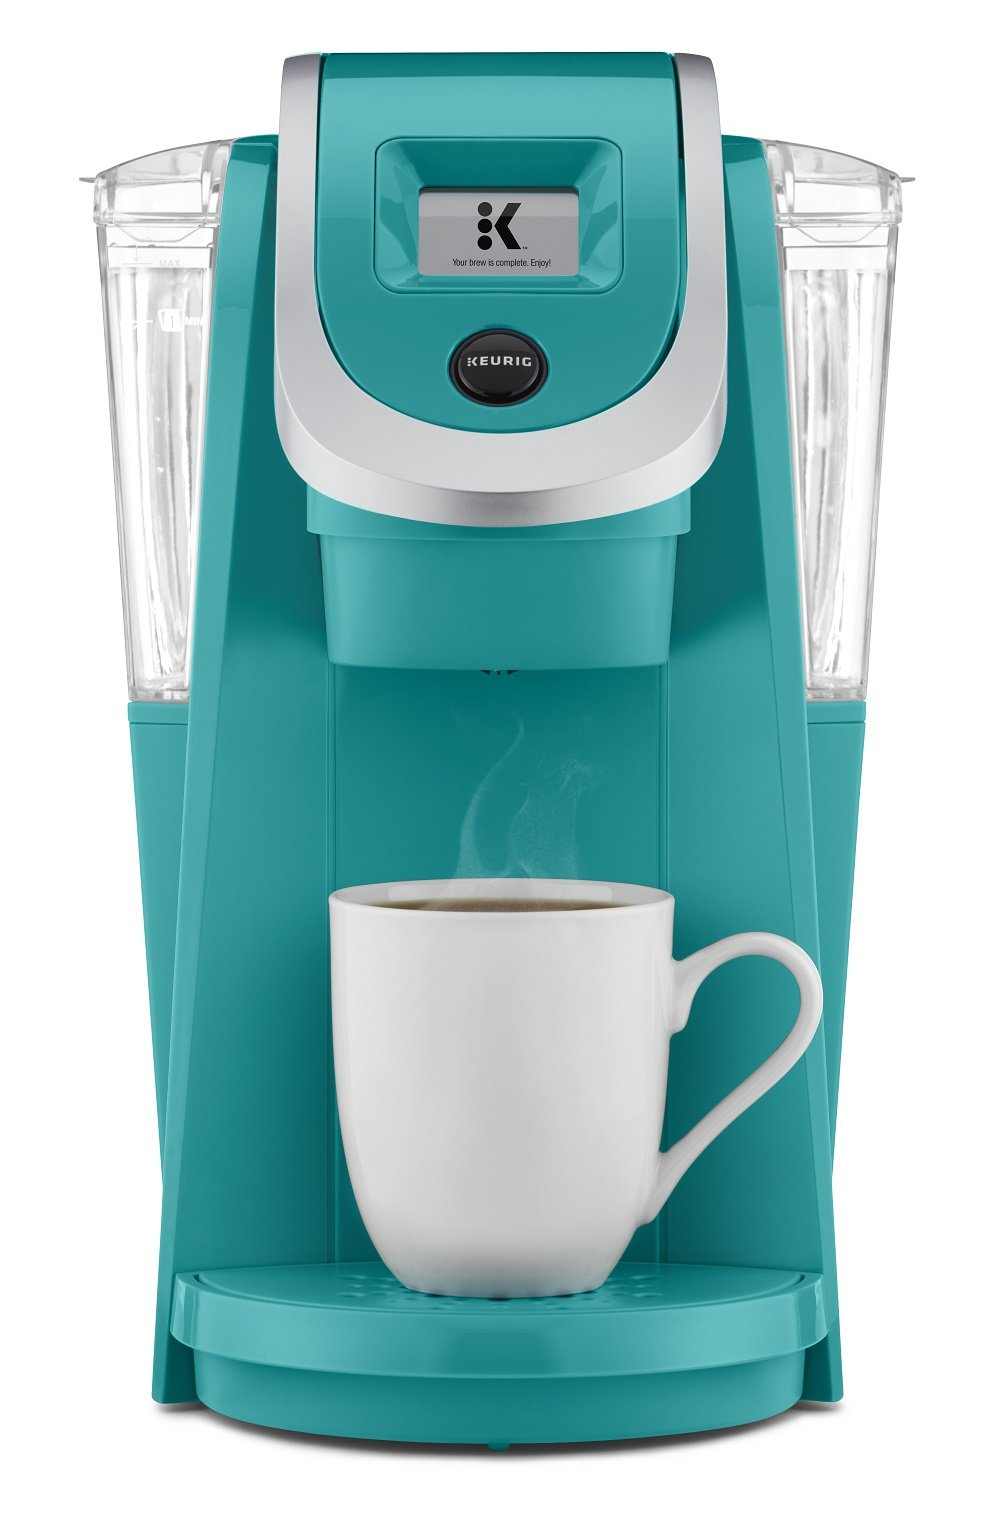 Keurig K250 Single Serve, Programmable K-Cup Pod Coffee Maker with strength control, Turquoise